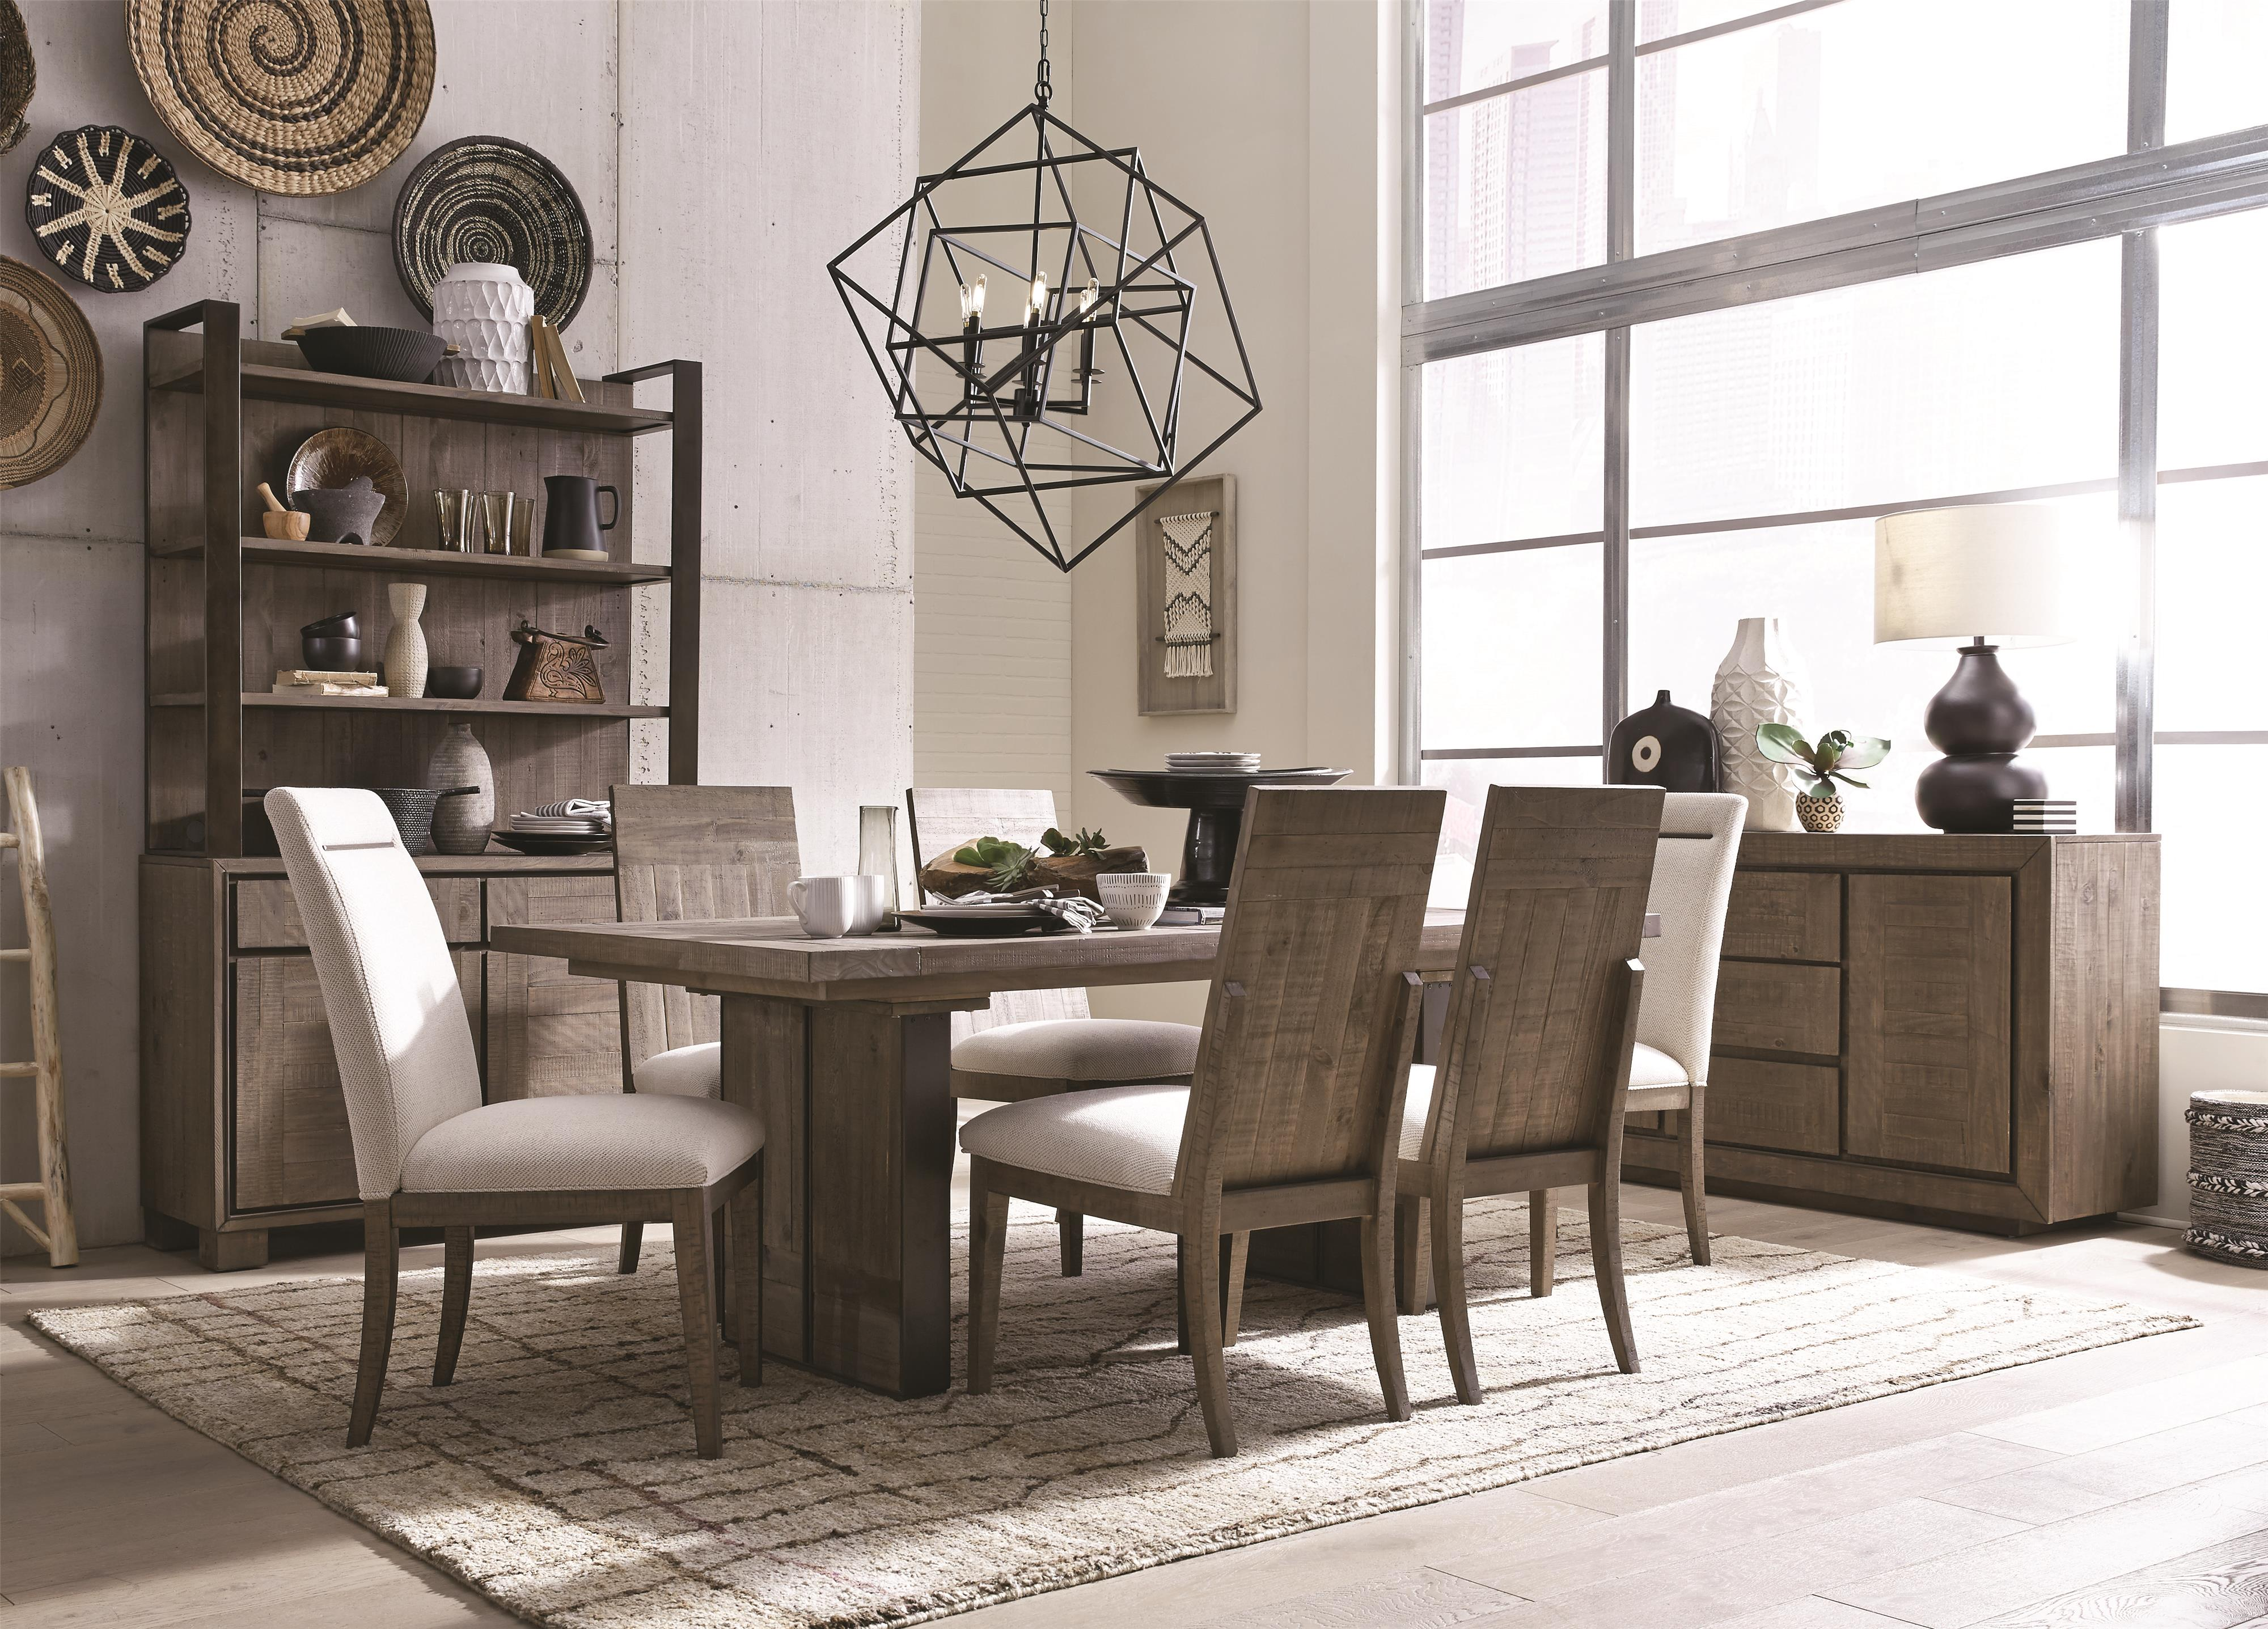 Groovy Granada Hills D4592 By Magnussen Home Rotmans Gmtry Best Dining Table And Chair Ideas Images Gmtryco